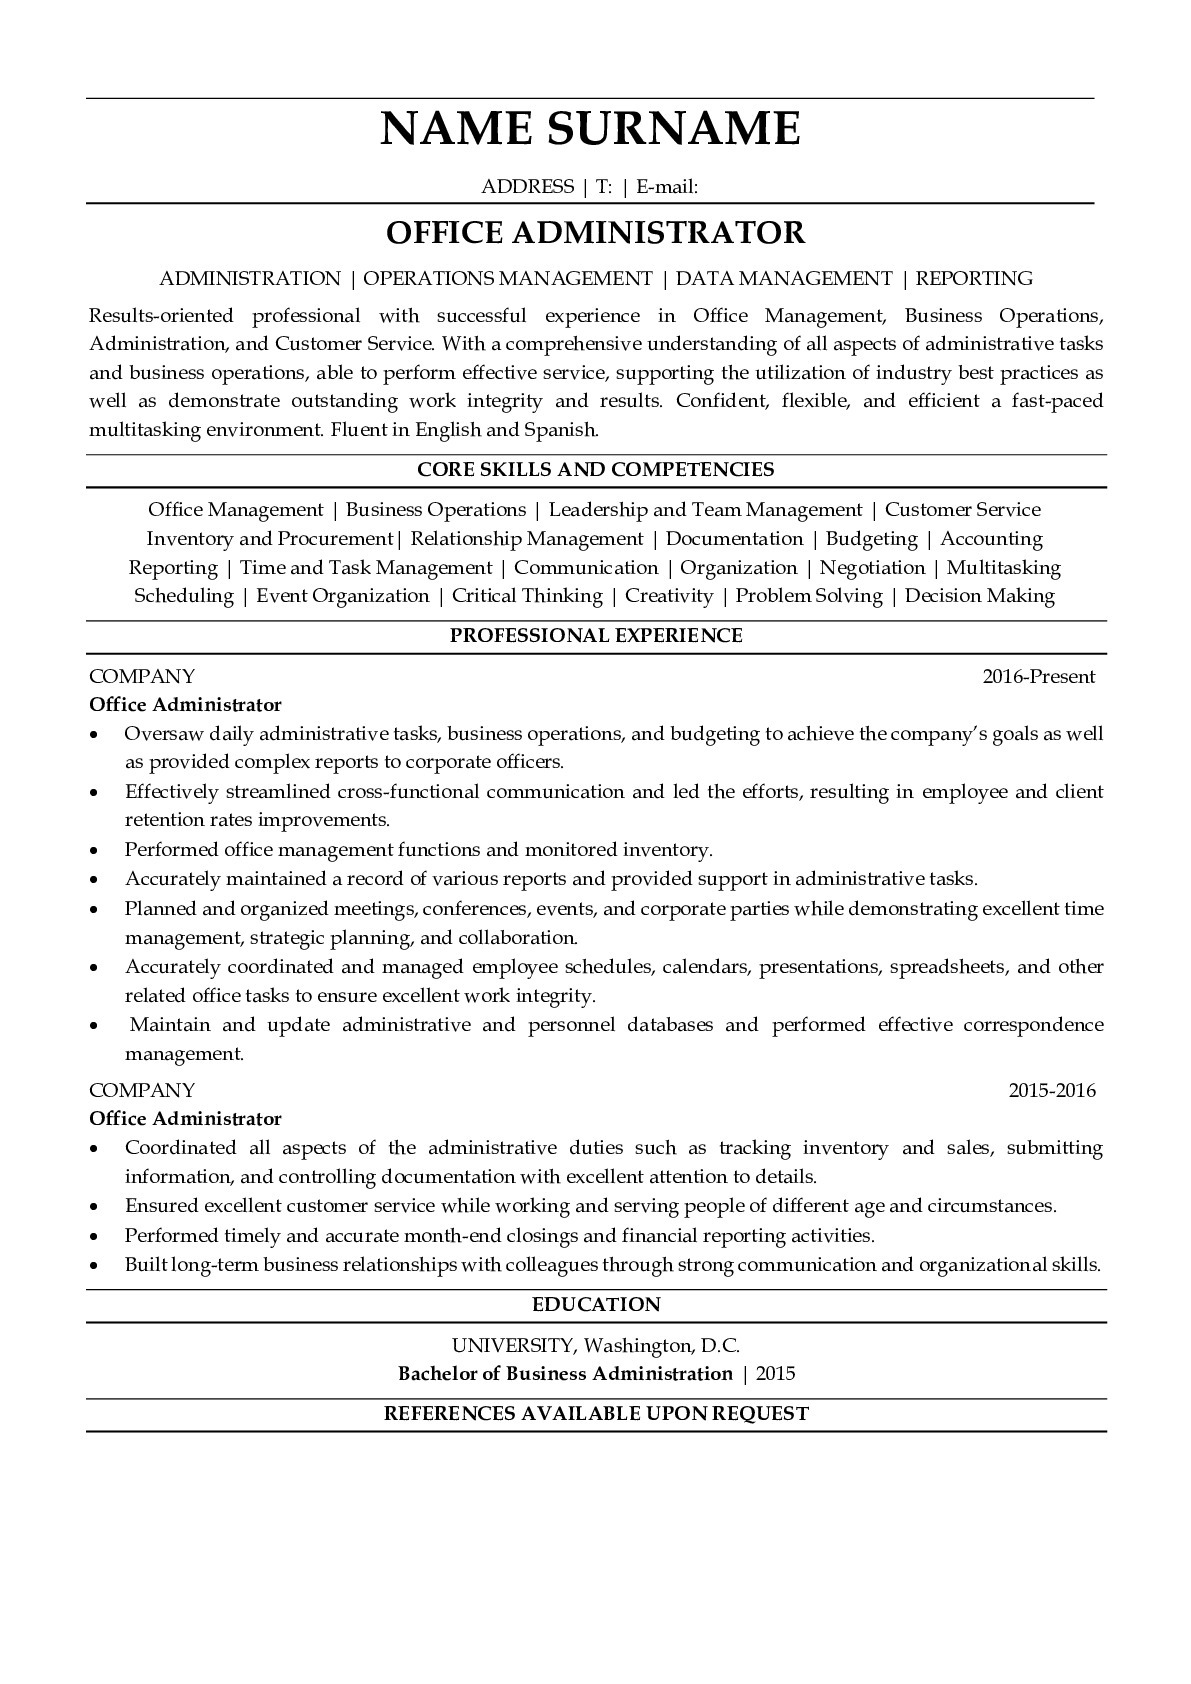 Resume Example for Office Administrator